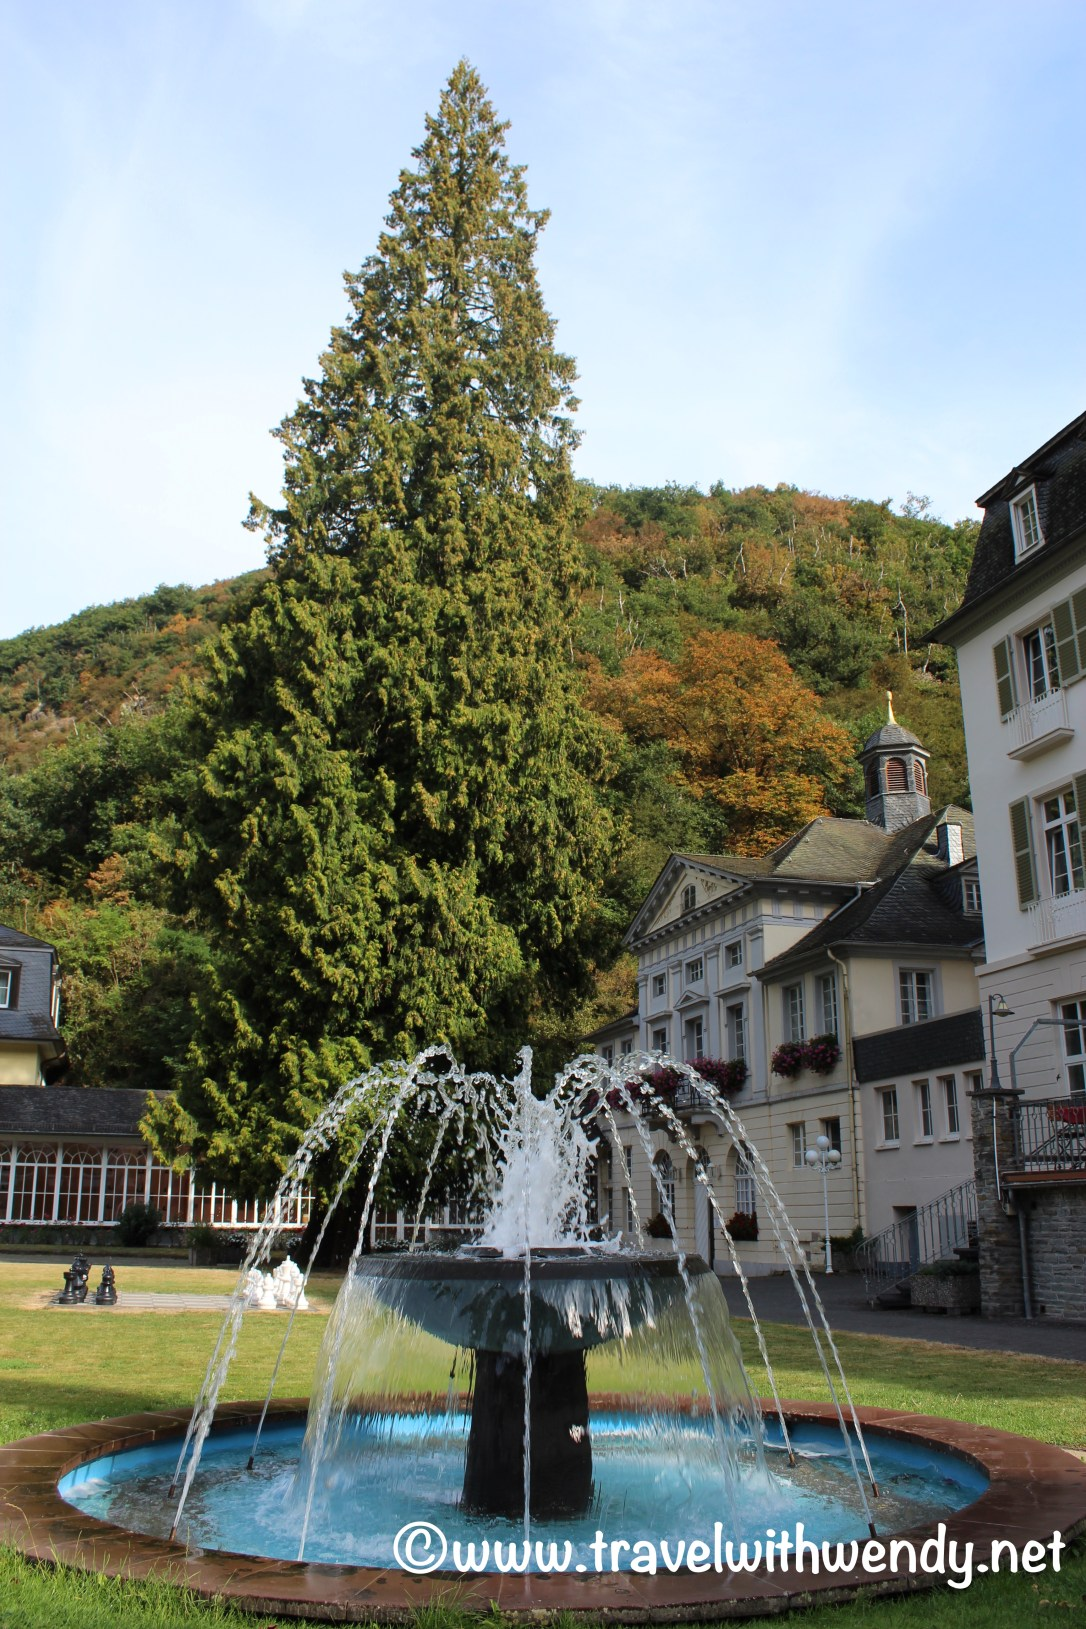 tww-bad-bertrich-fountain